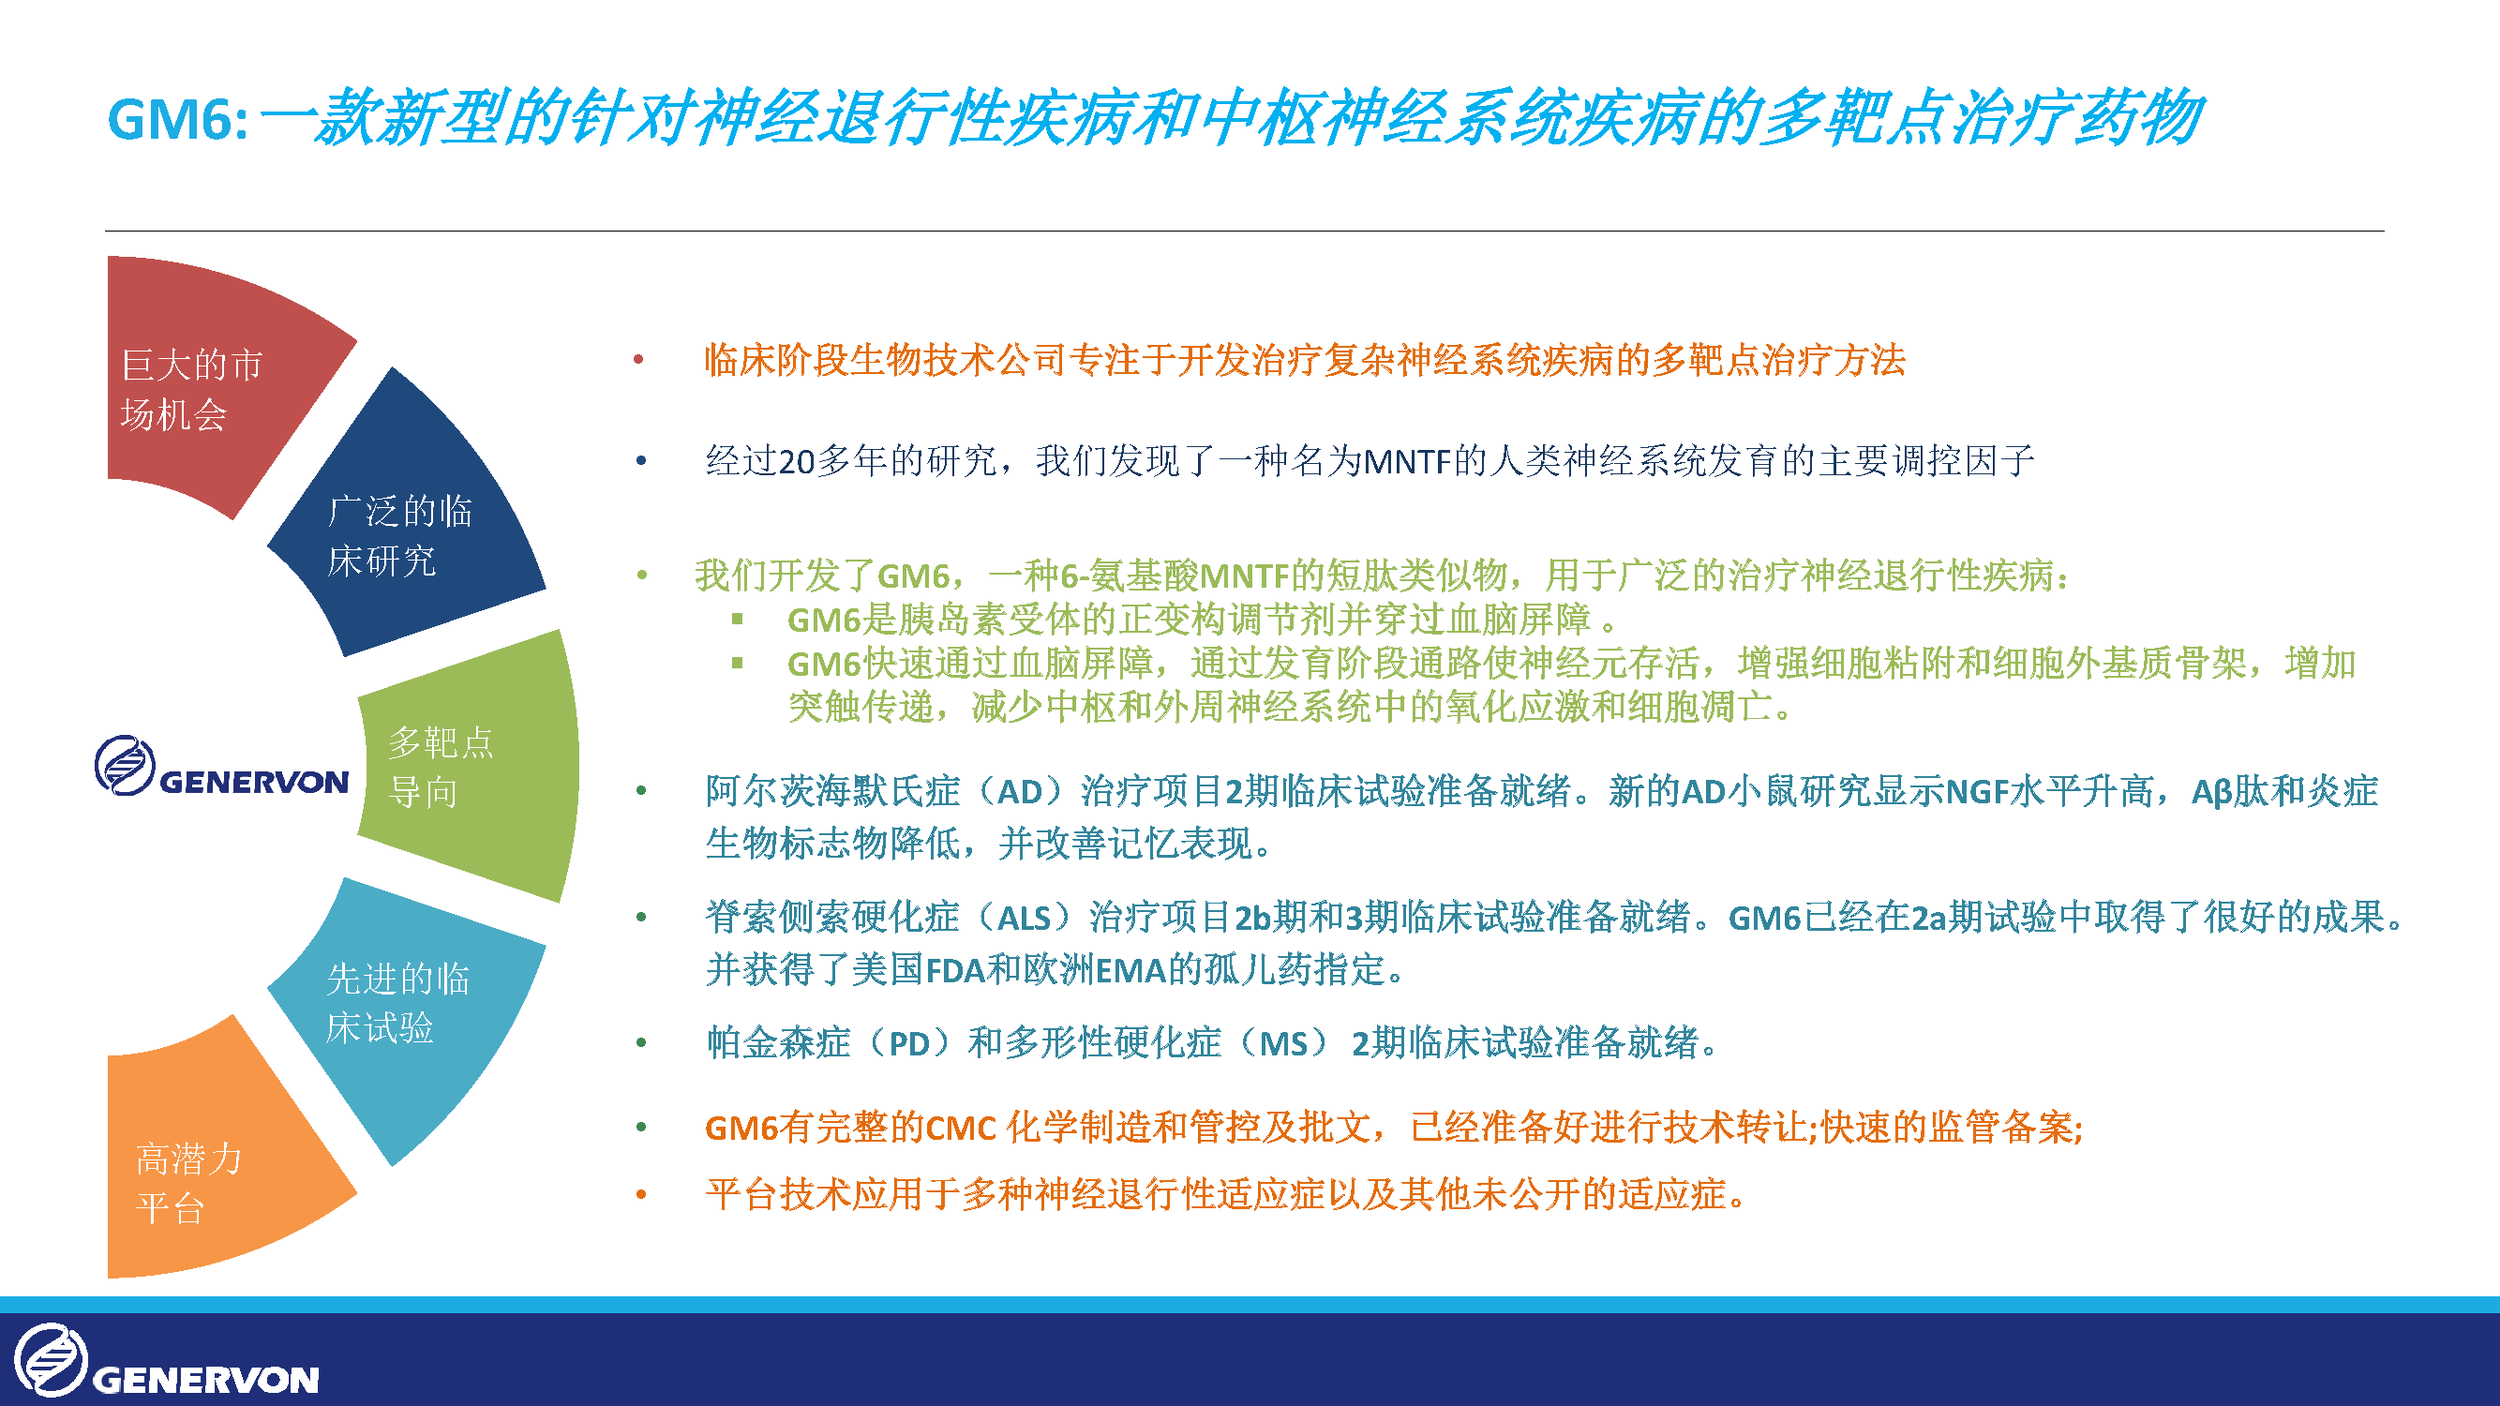 WuXi Presentation Chinese_Page_2.png